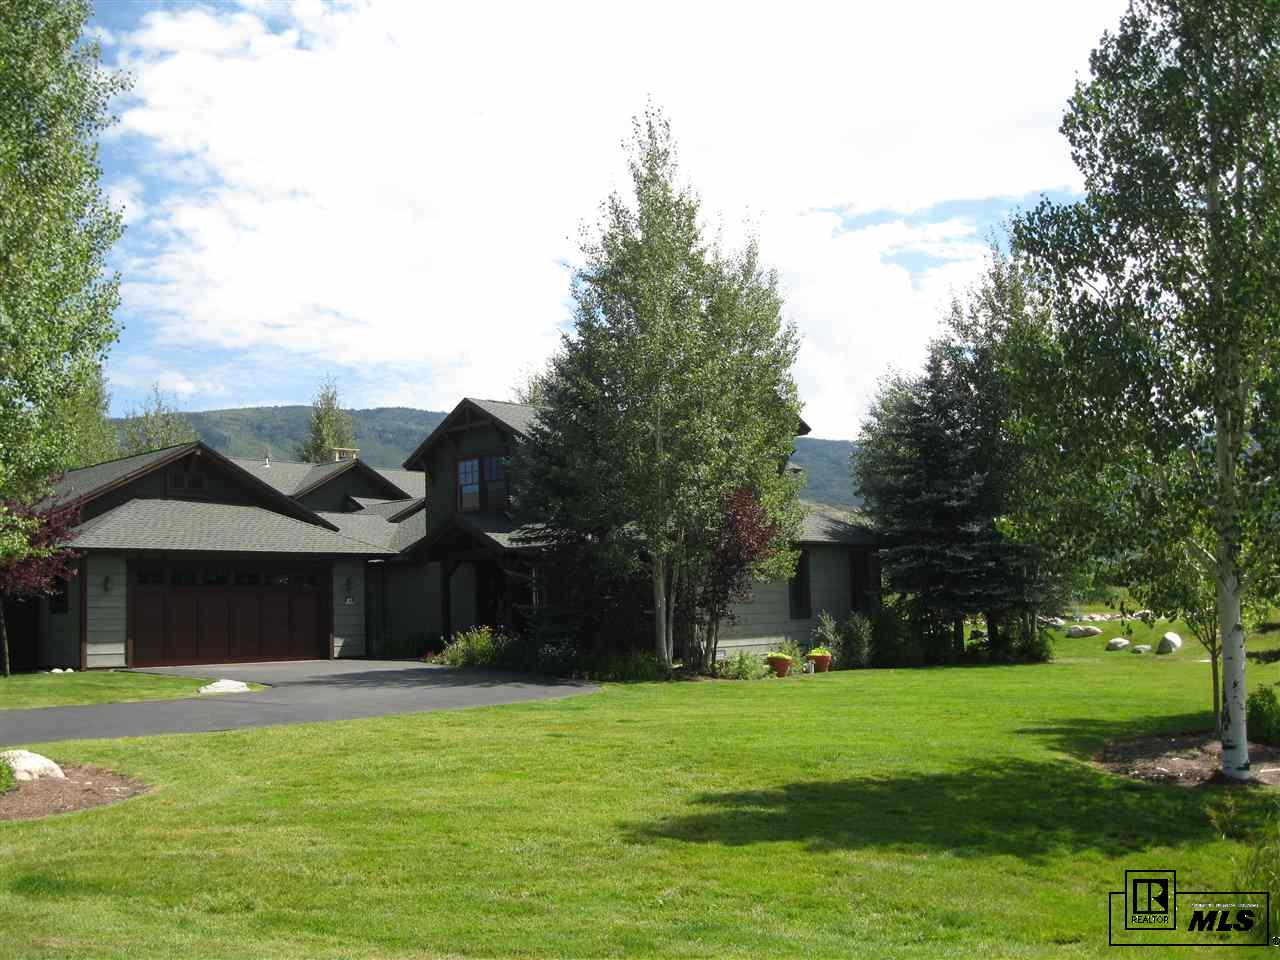 30405 Lakeshore Trail, Steamboat Springs, CO 80487